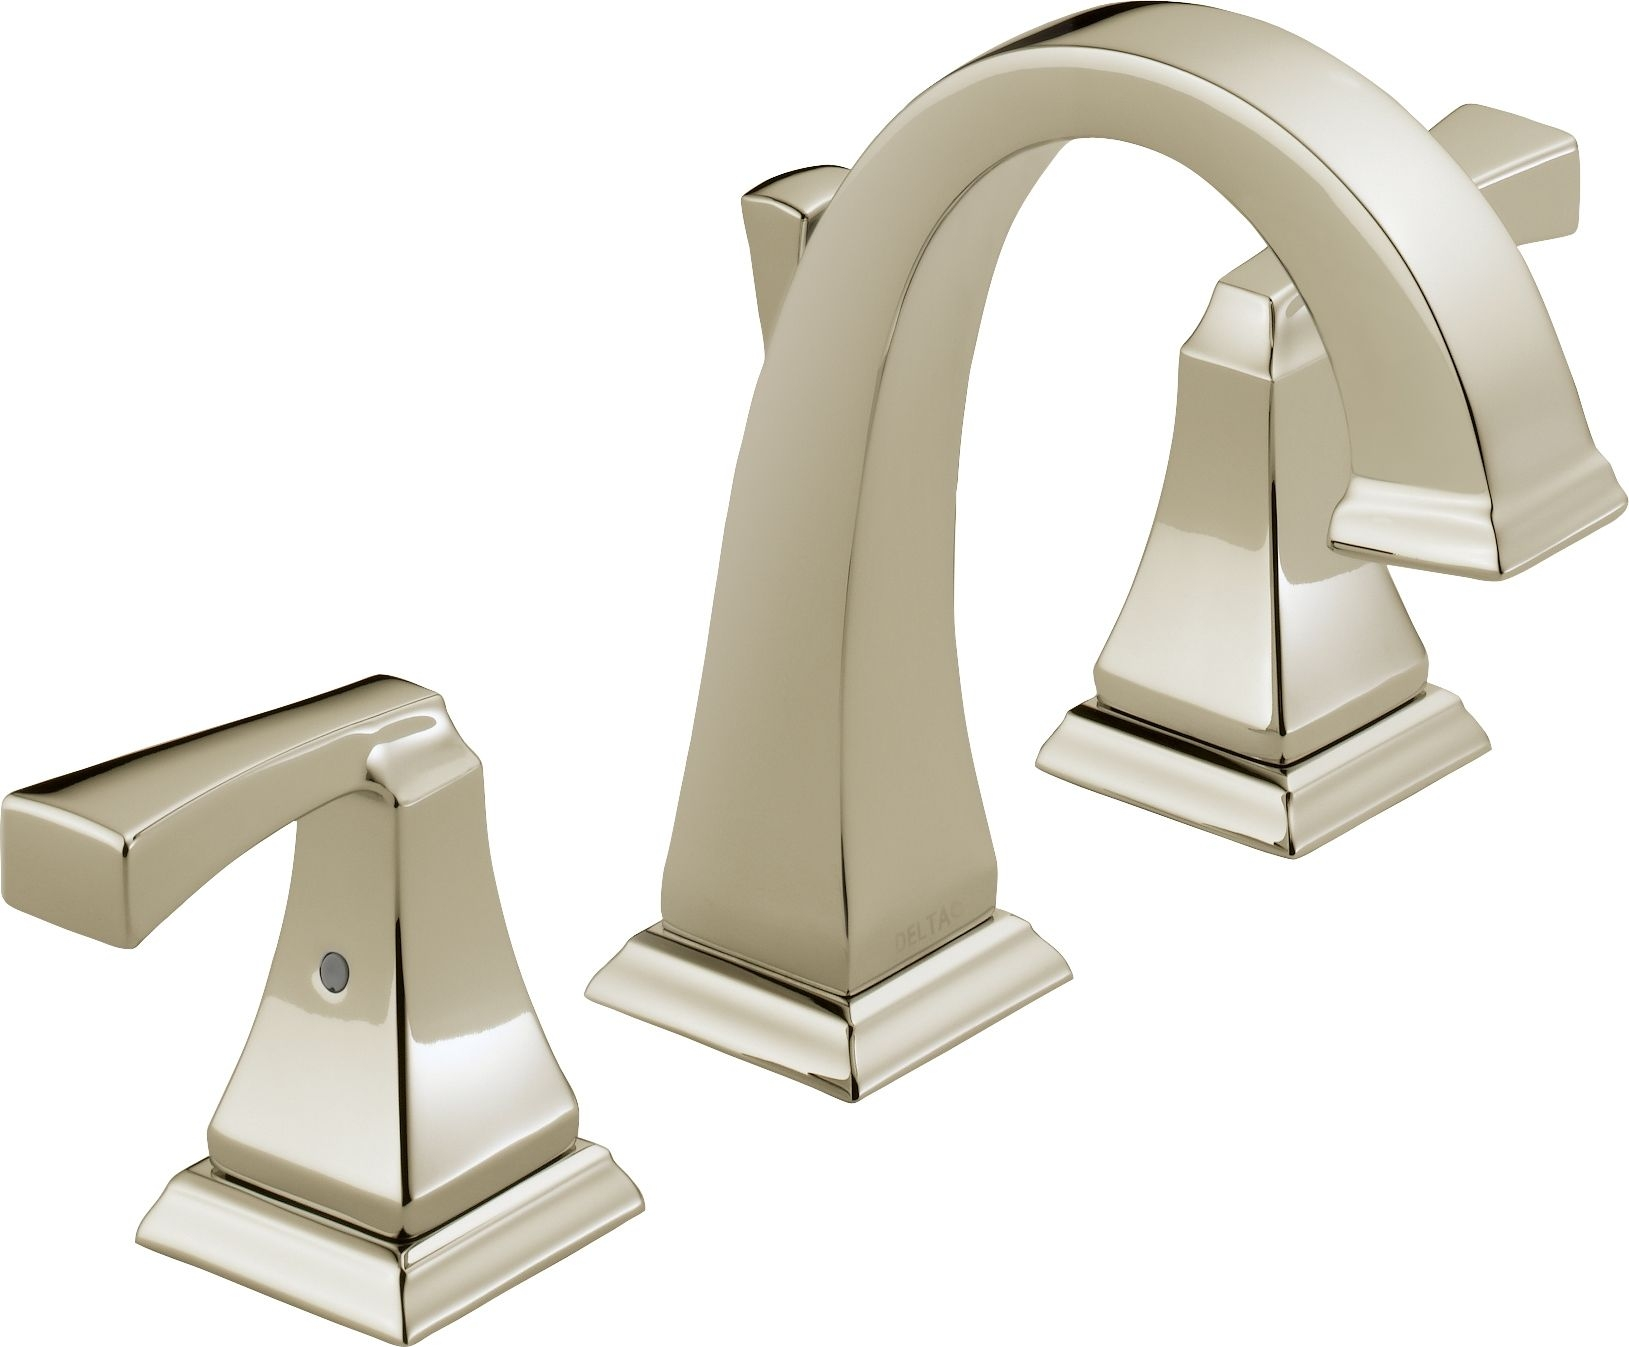 Ideas, delta windemere widespread bathroom faucet with double lever handles delta windemere widespread bathroom faucet with double lever handles bathroom sink faucets at faucetdirect 1629 x 1347  .